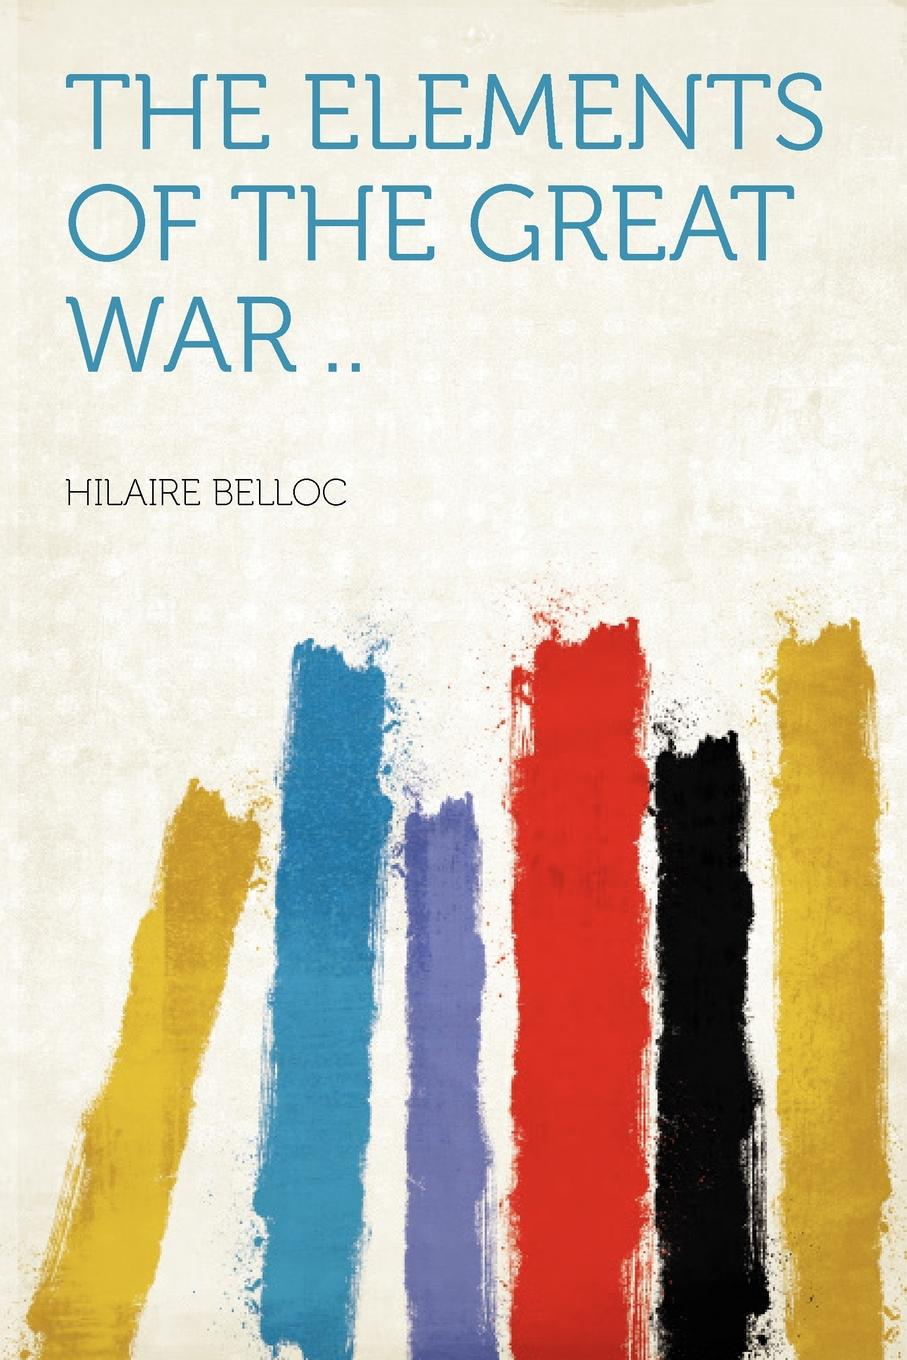 The Elements of the Great War ... Hilaire Belloc